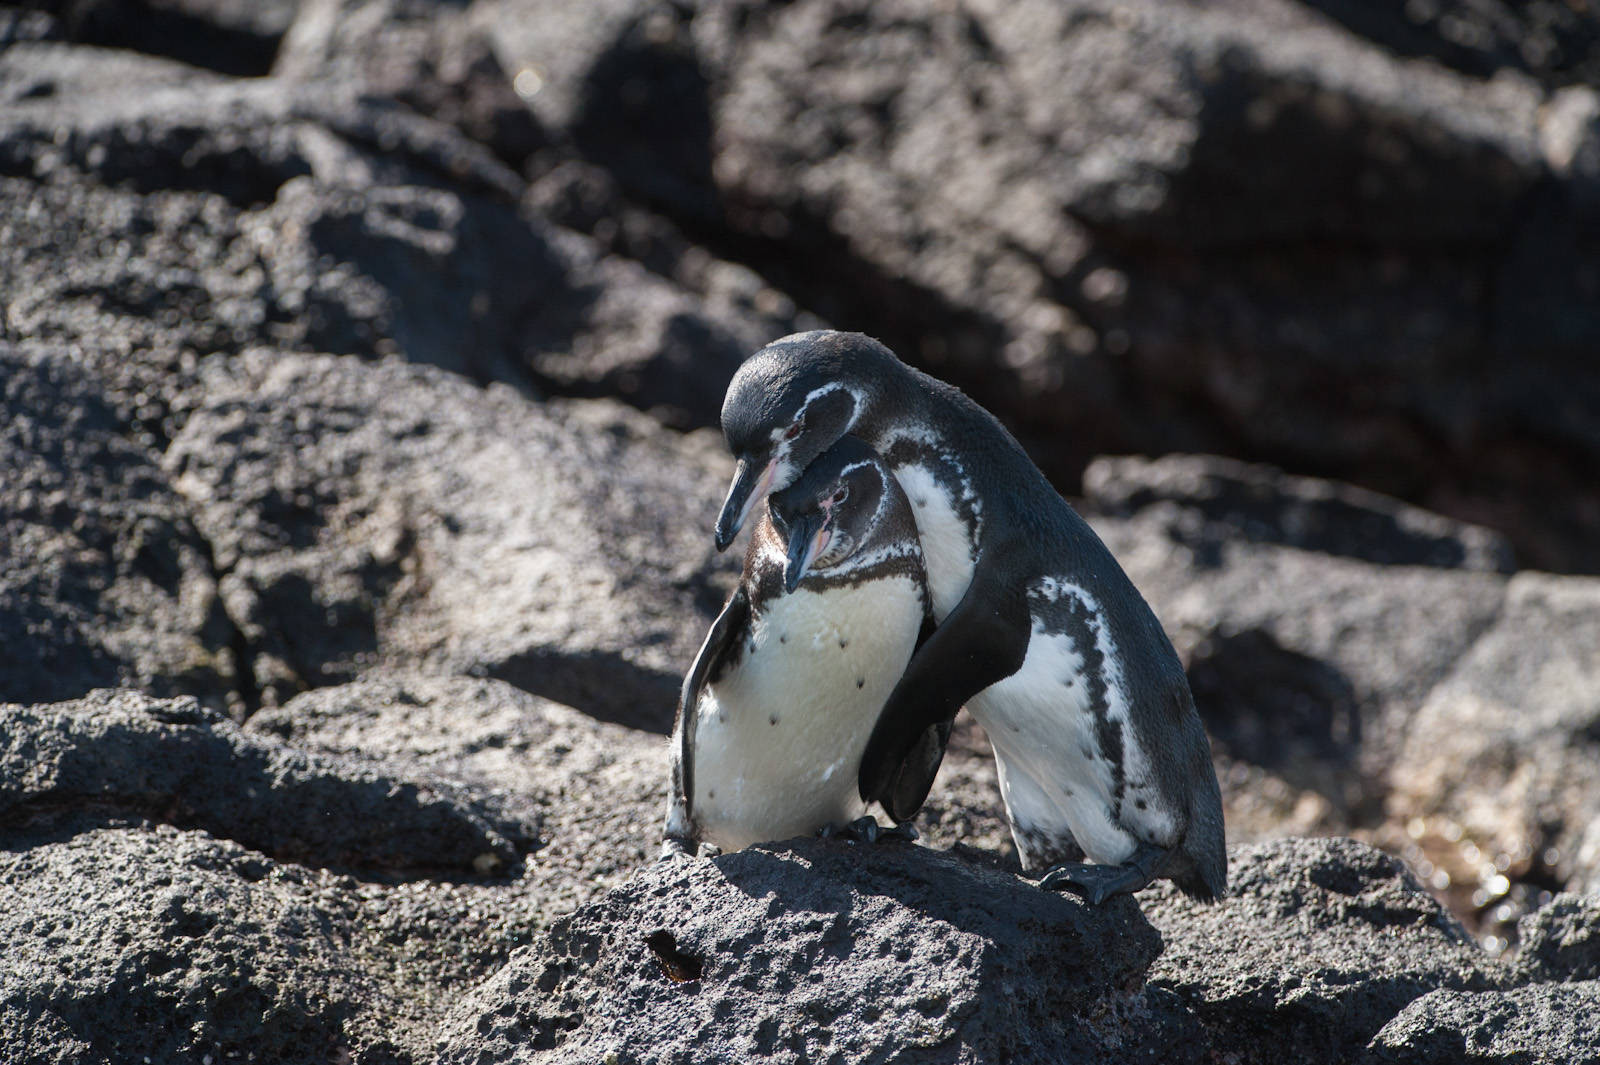 Photo: Galapagos penguins (Spheniscus mendiculus), on Bartholomew Island, part of Galapagos National Park.